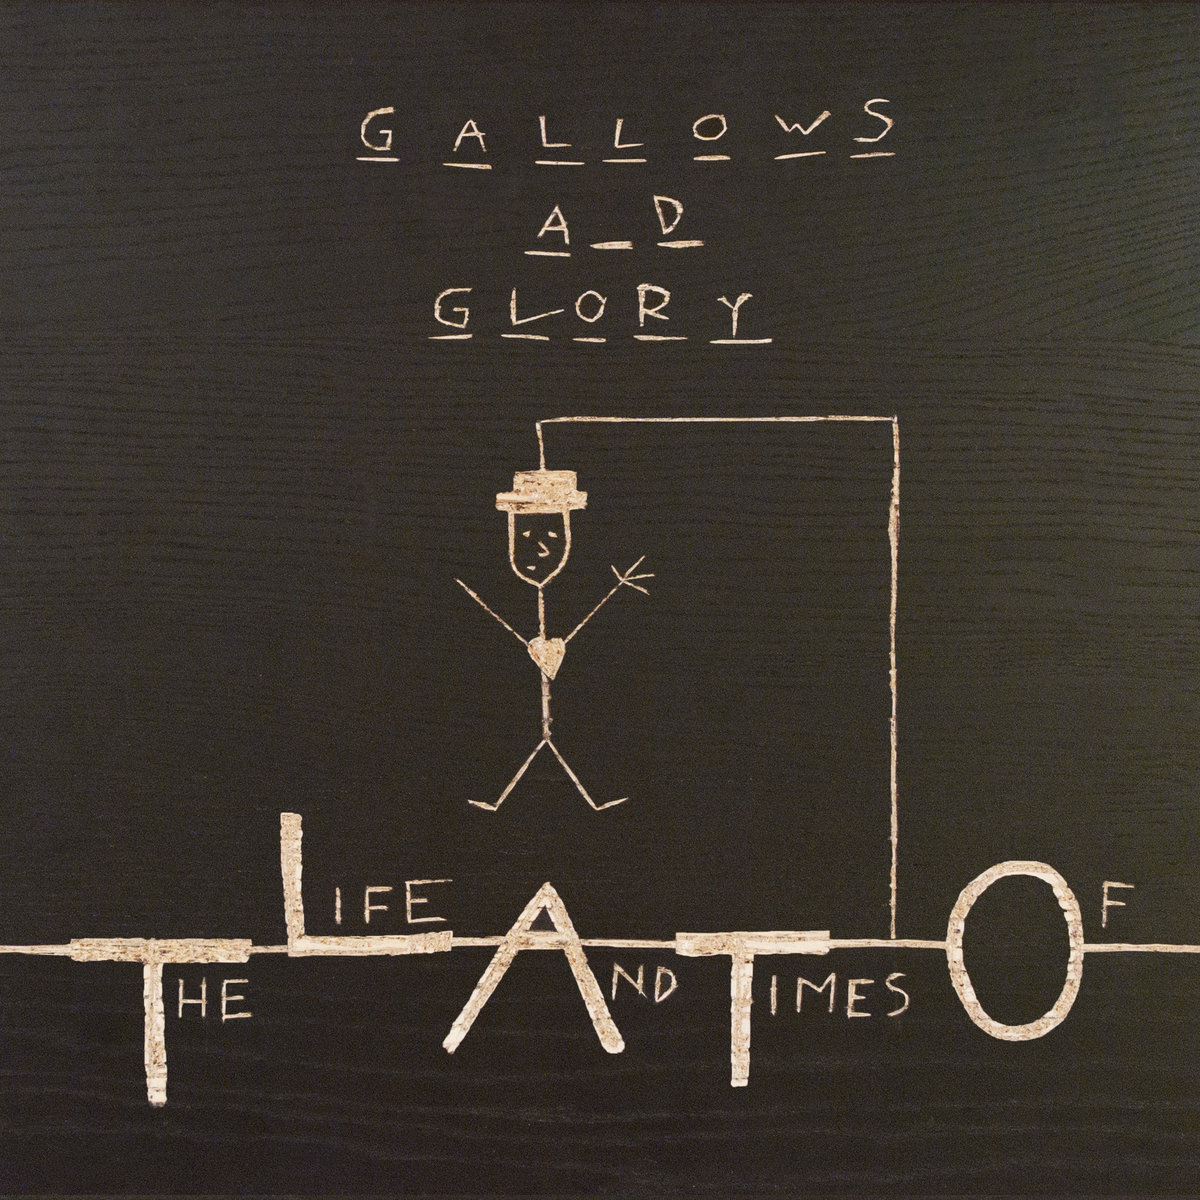 The Life And Times Of - Gallows And Glory (2010)